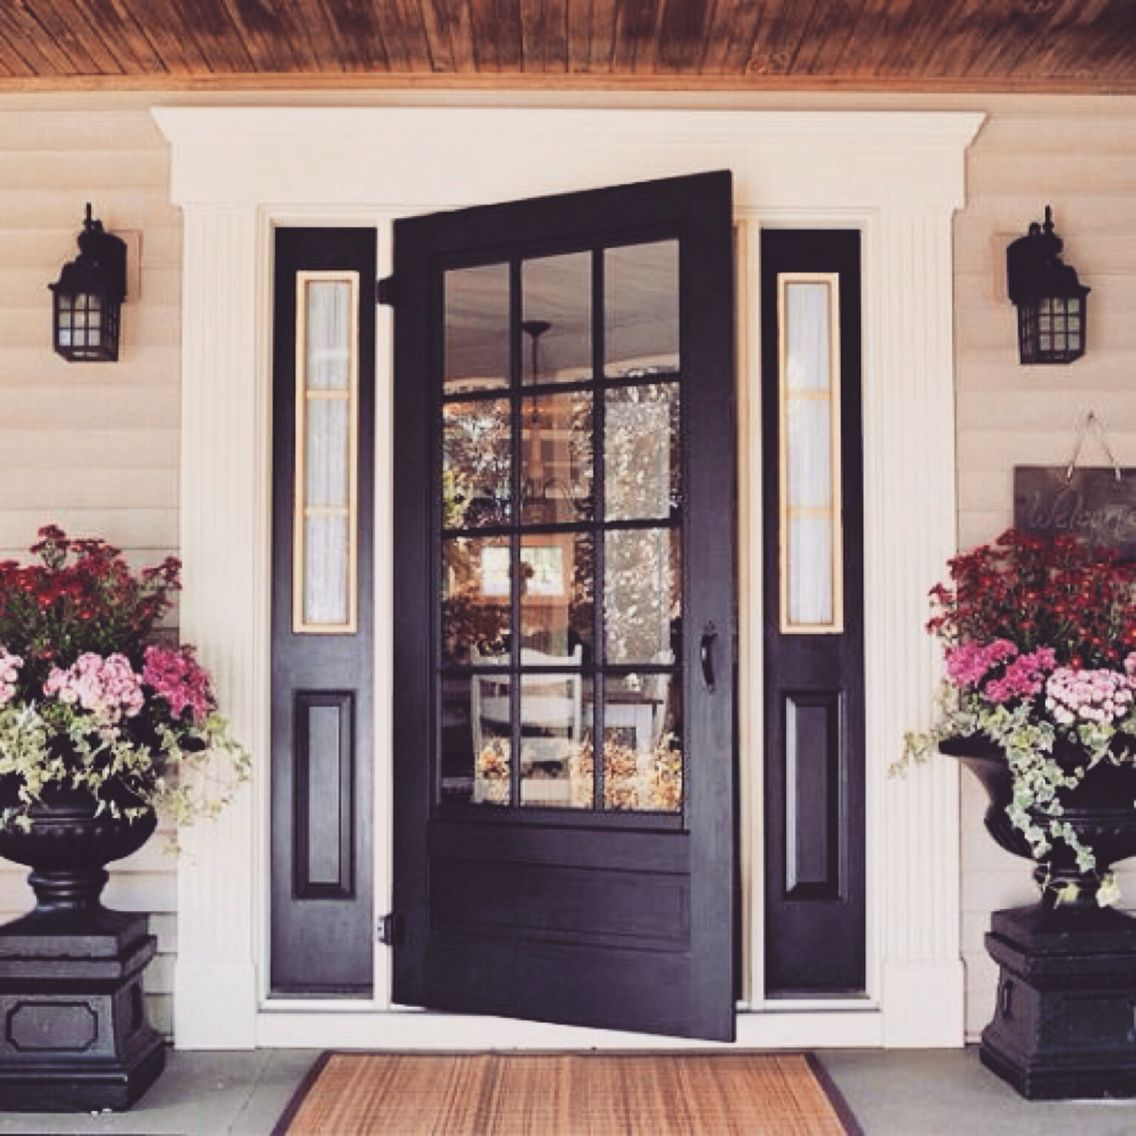 Pin By Lauren Taplinger On Dream House My Dream Home House Exterior Front Door Design